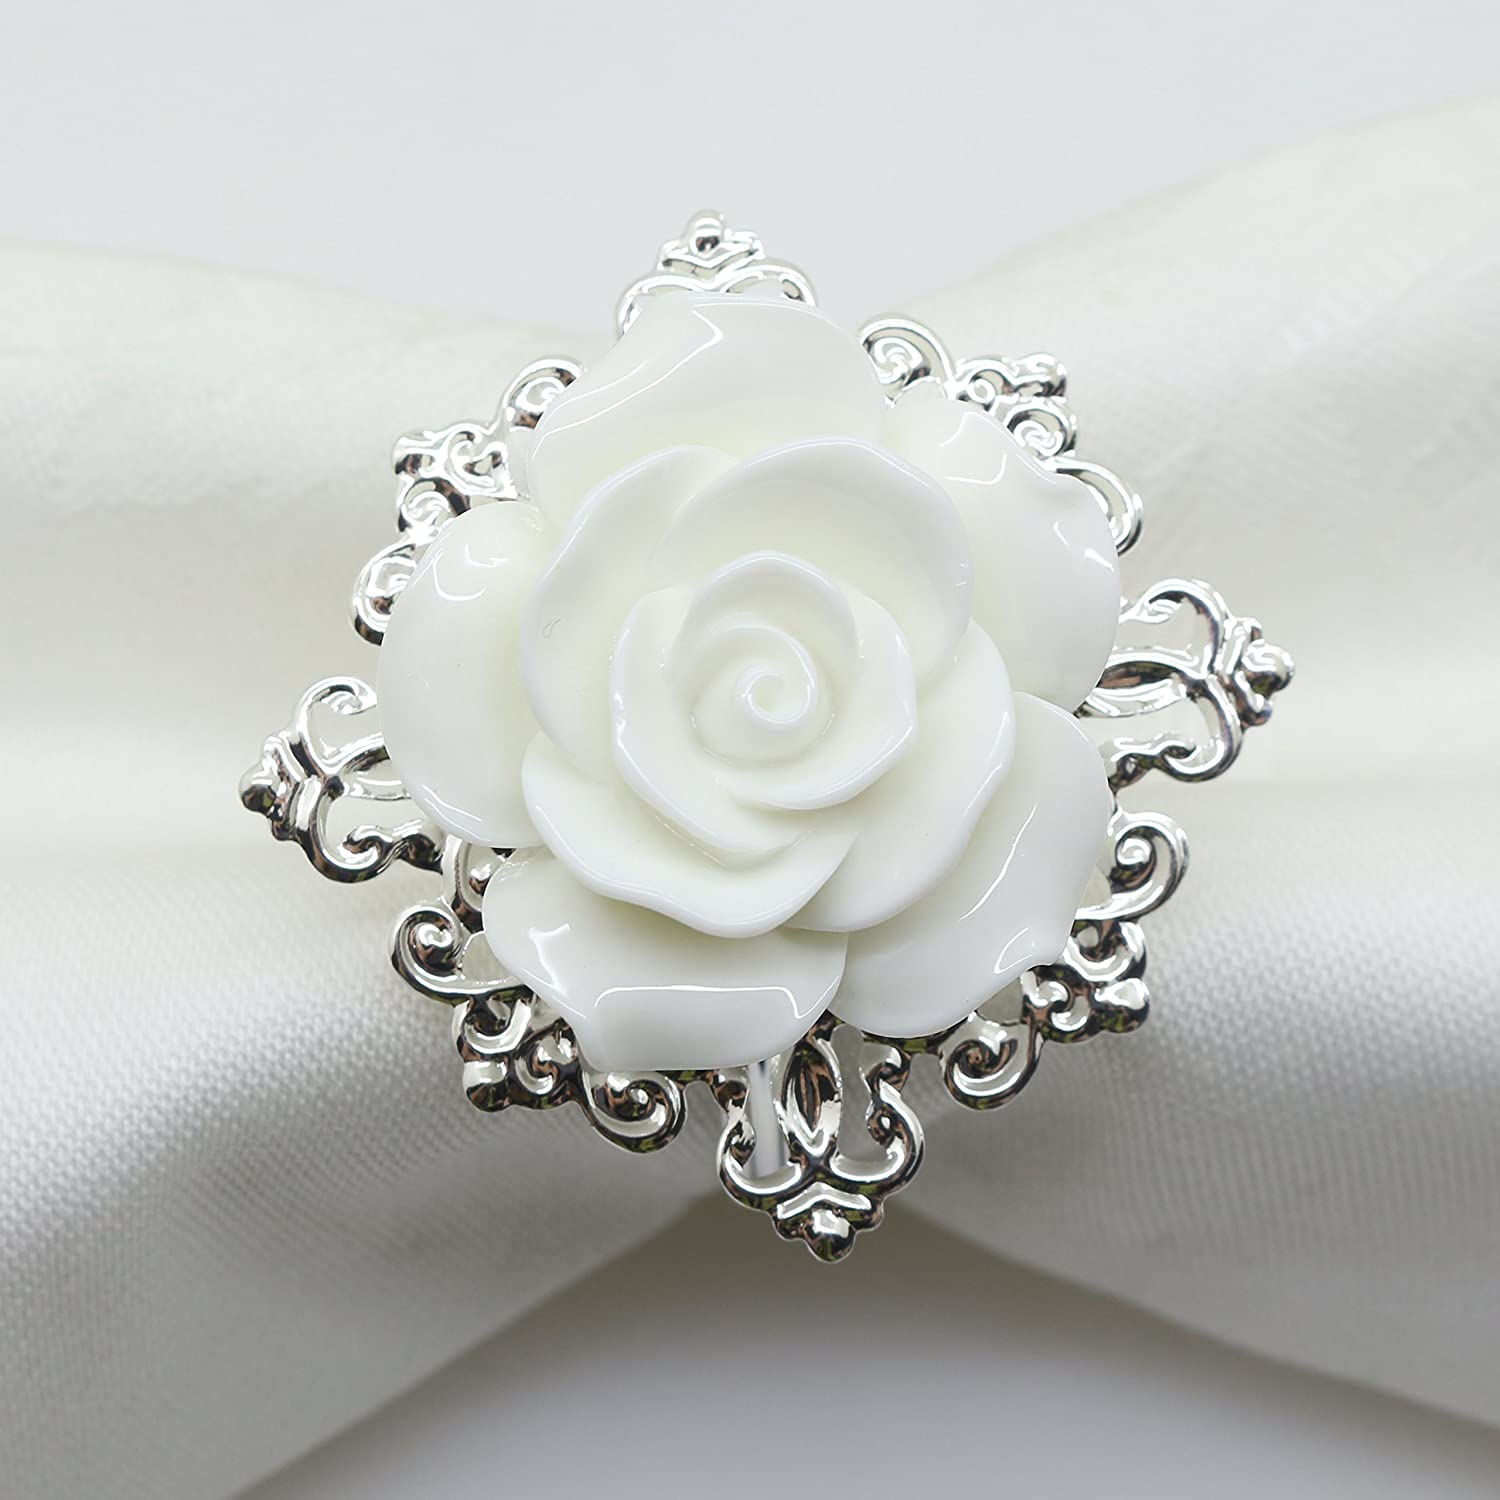 10pcs White Rose Decorative Silver Napkin Ring Serviette Holder for Wedding Party Dinner Table Decor Many Color Available For Christmas Table Yomoo